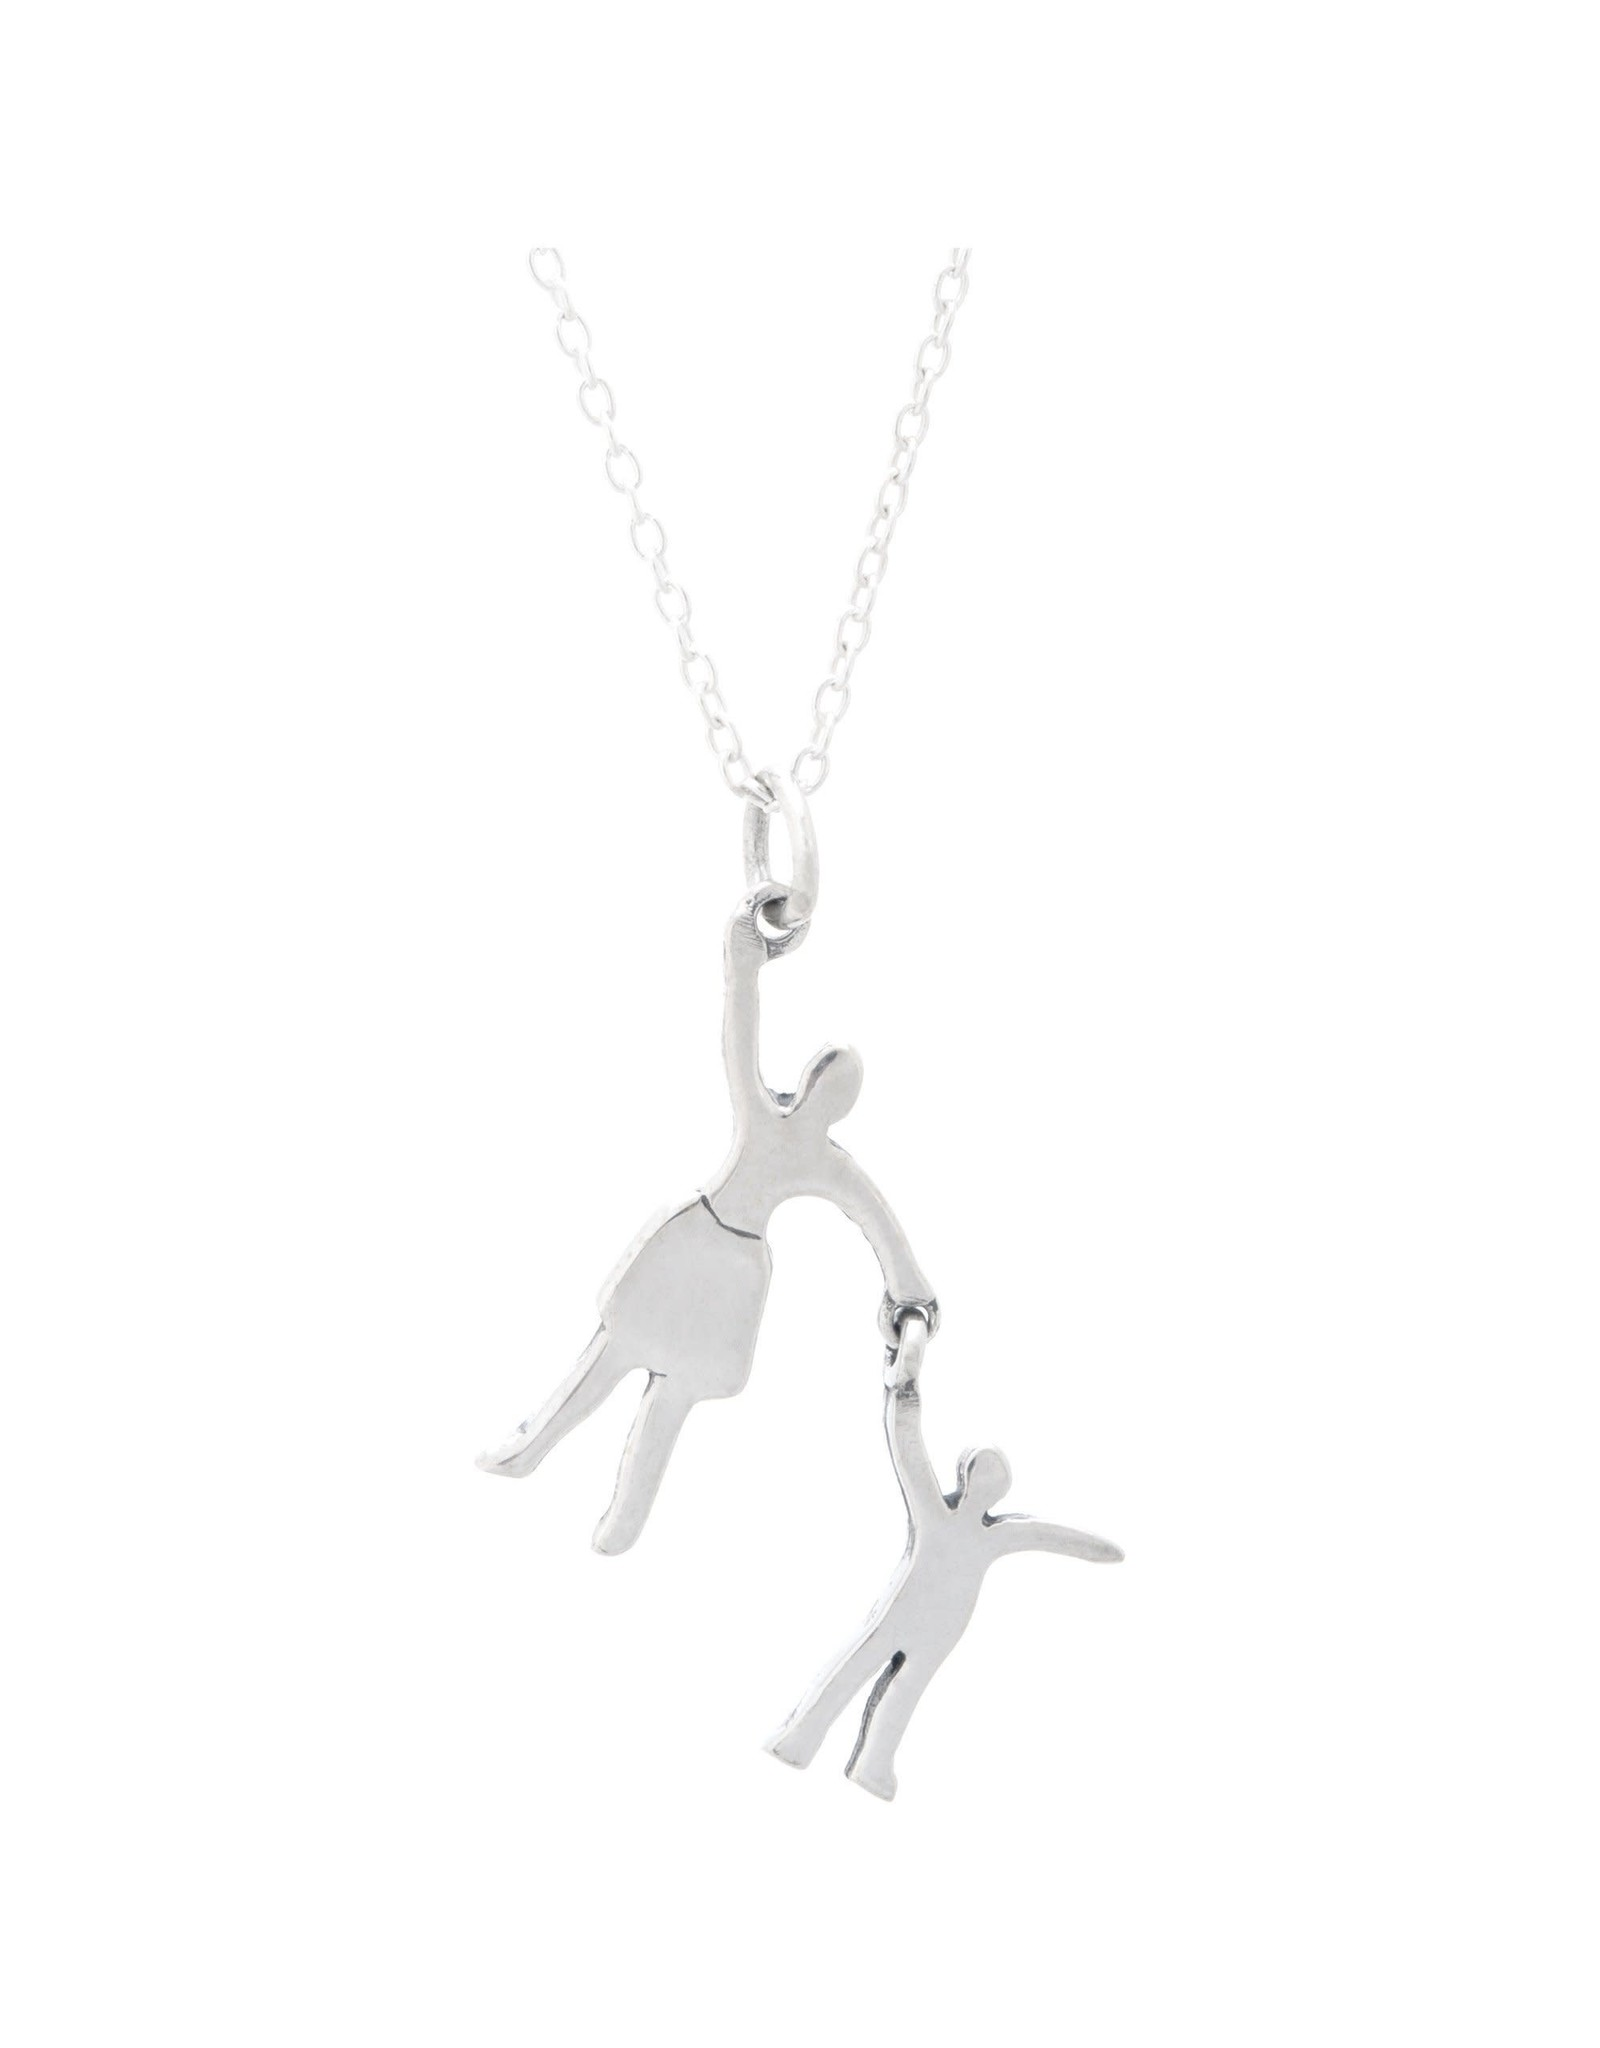 Pendant Necklace, Mother and Daughter Silhouette, Thailand